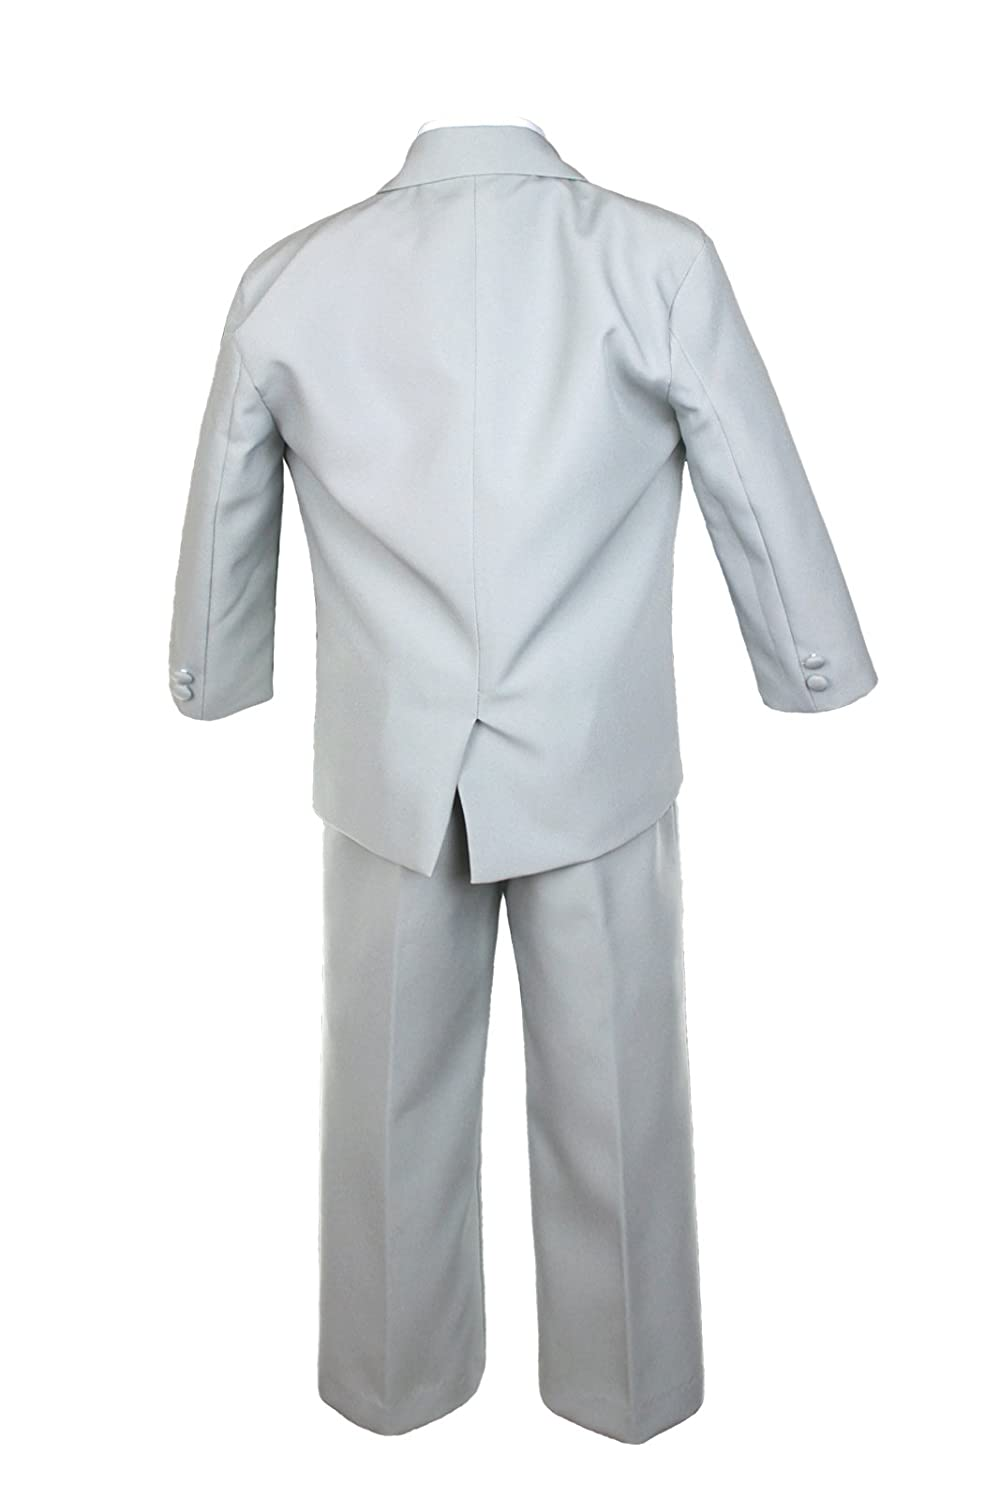 Unotux 6pc Boy Gray Suit with Satin Light Champagne Necktie Outfits Baby to Teen